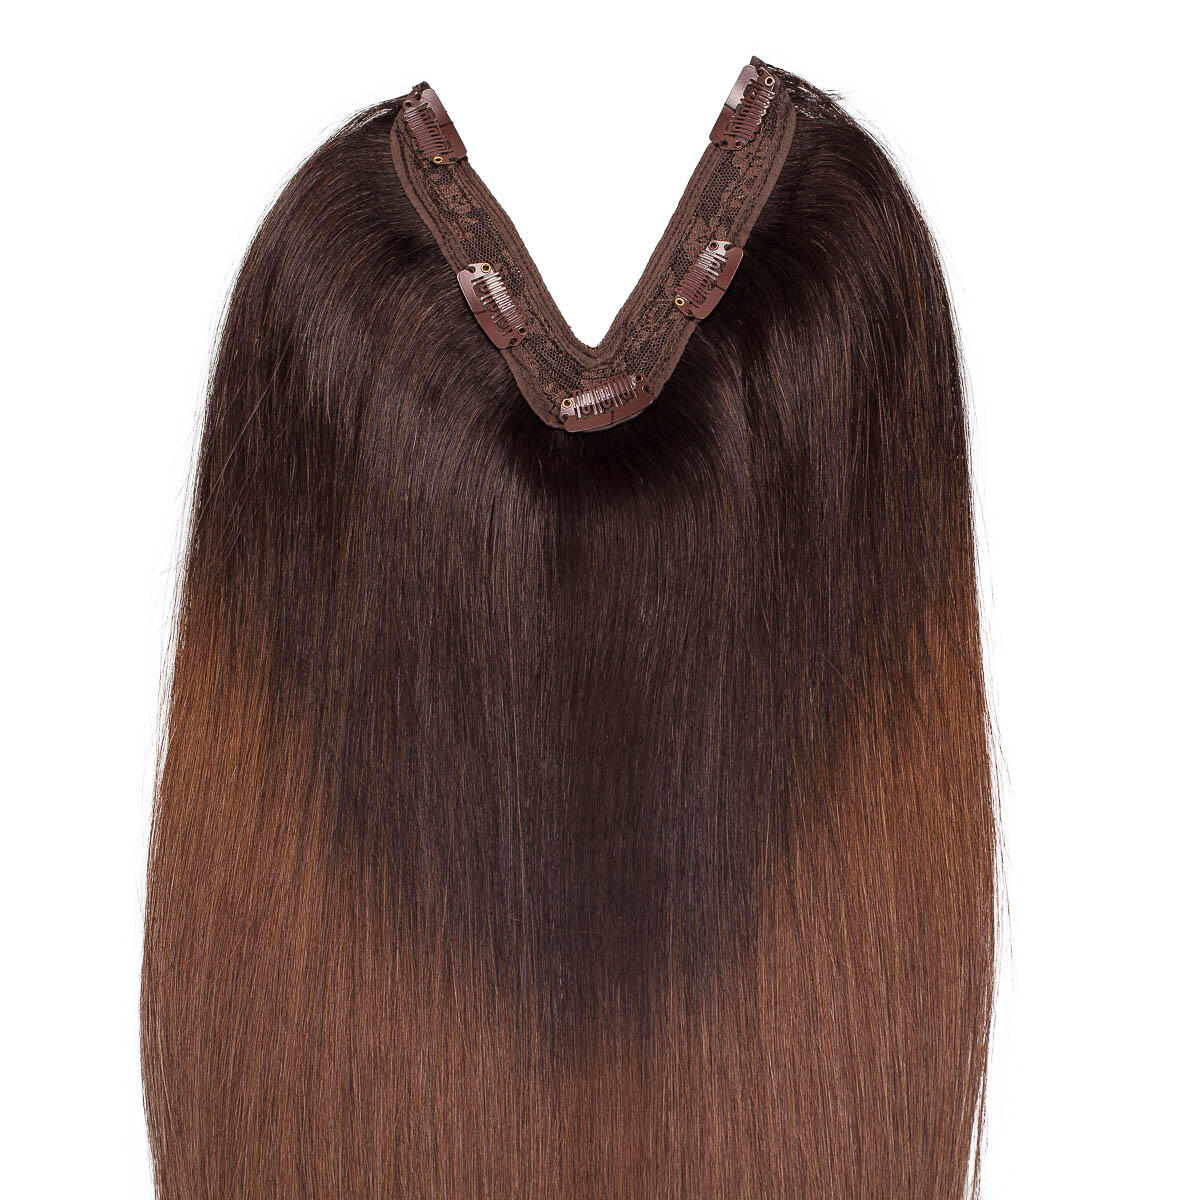 Easy Clip-in Original O2.3/5.0 Chocolate Brown Ombre 50 cm